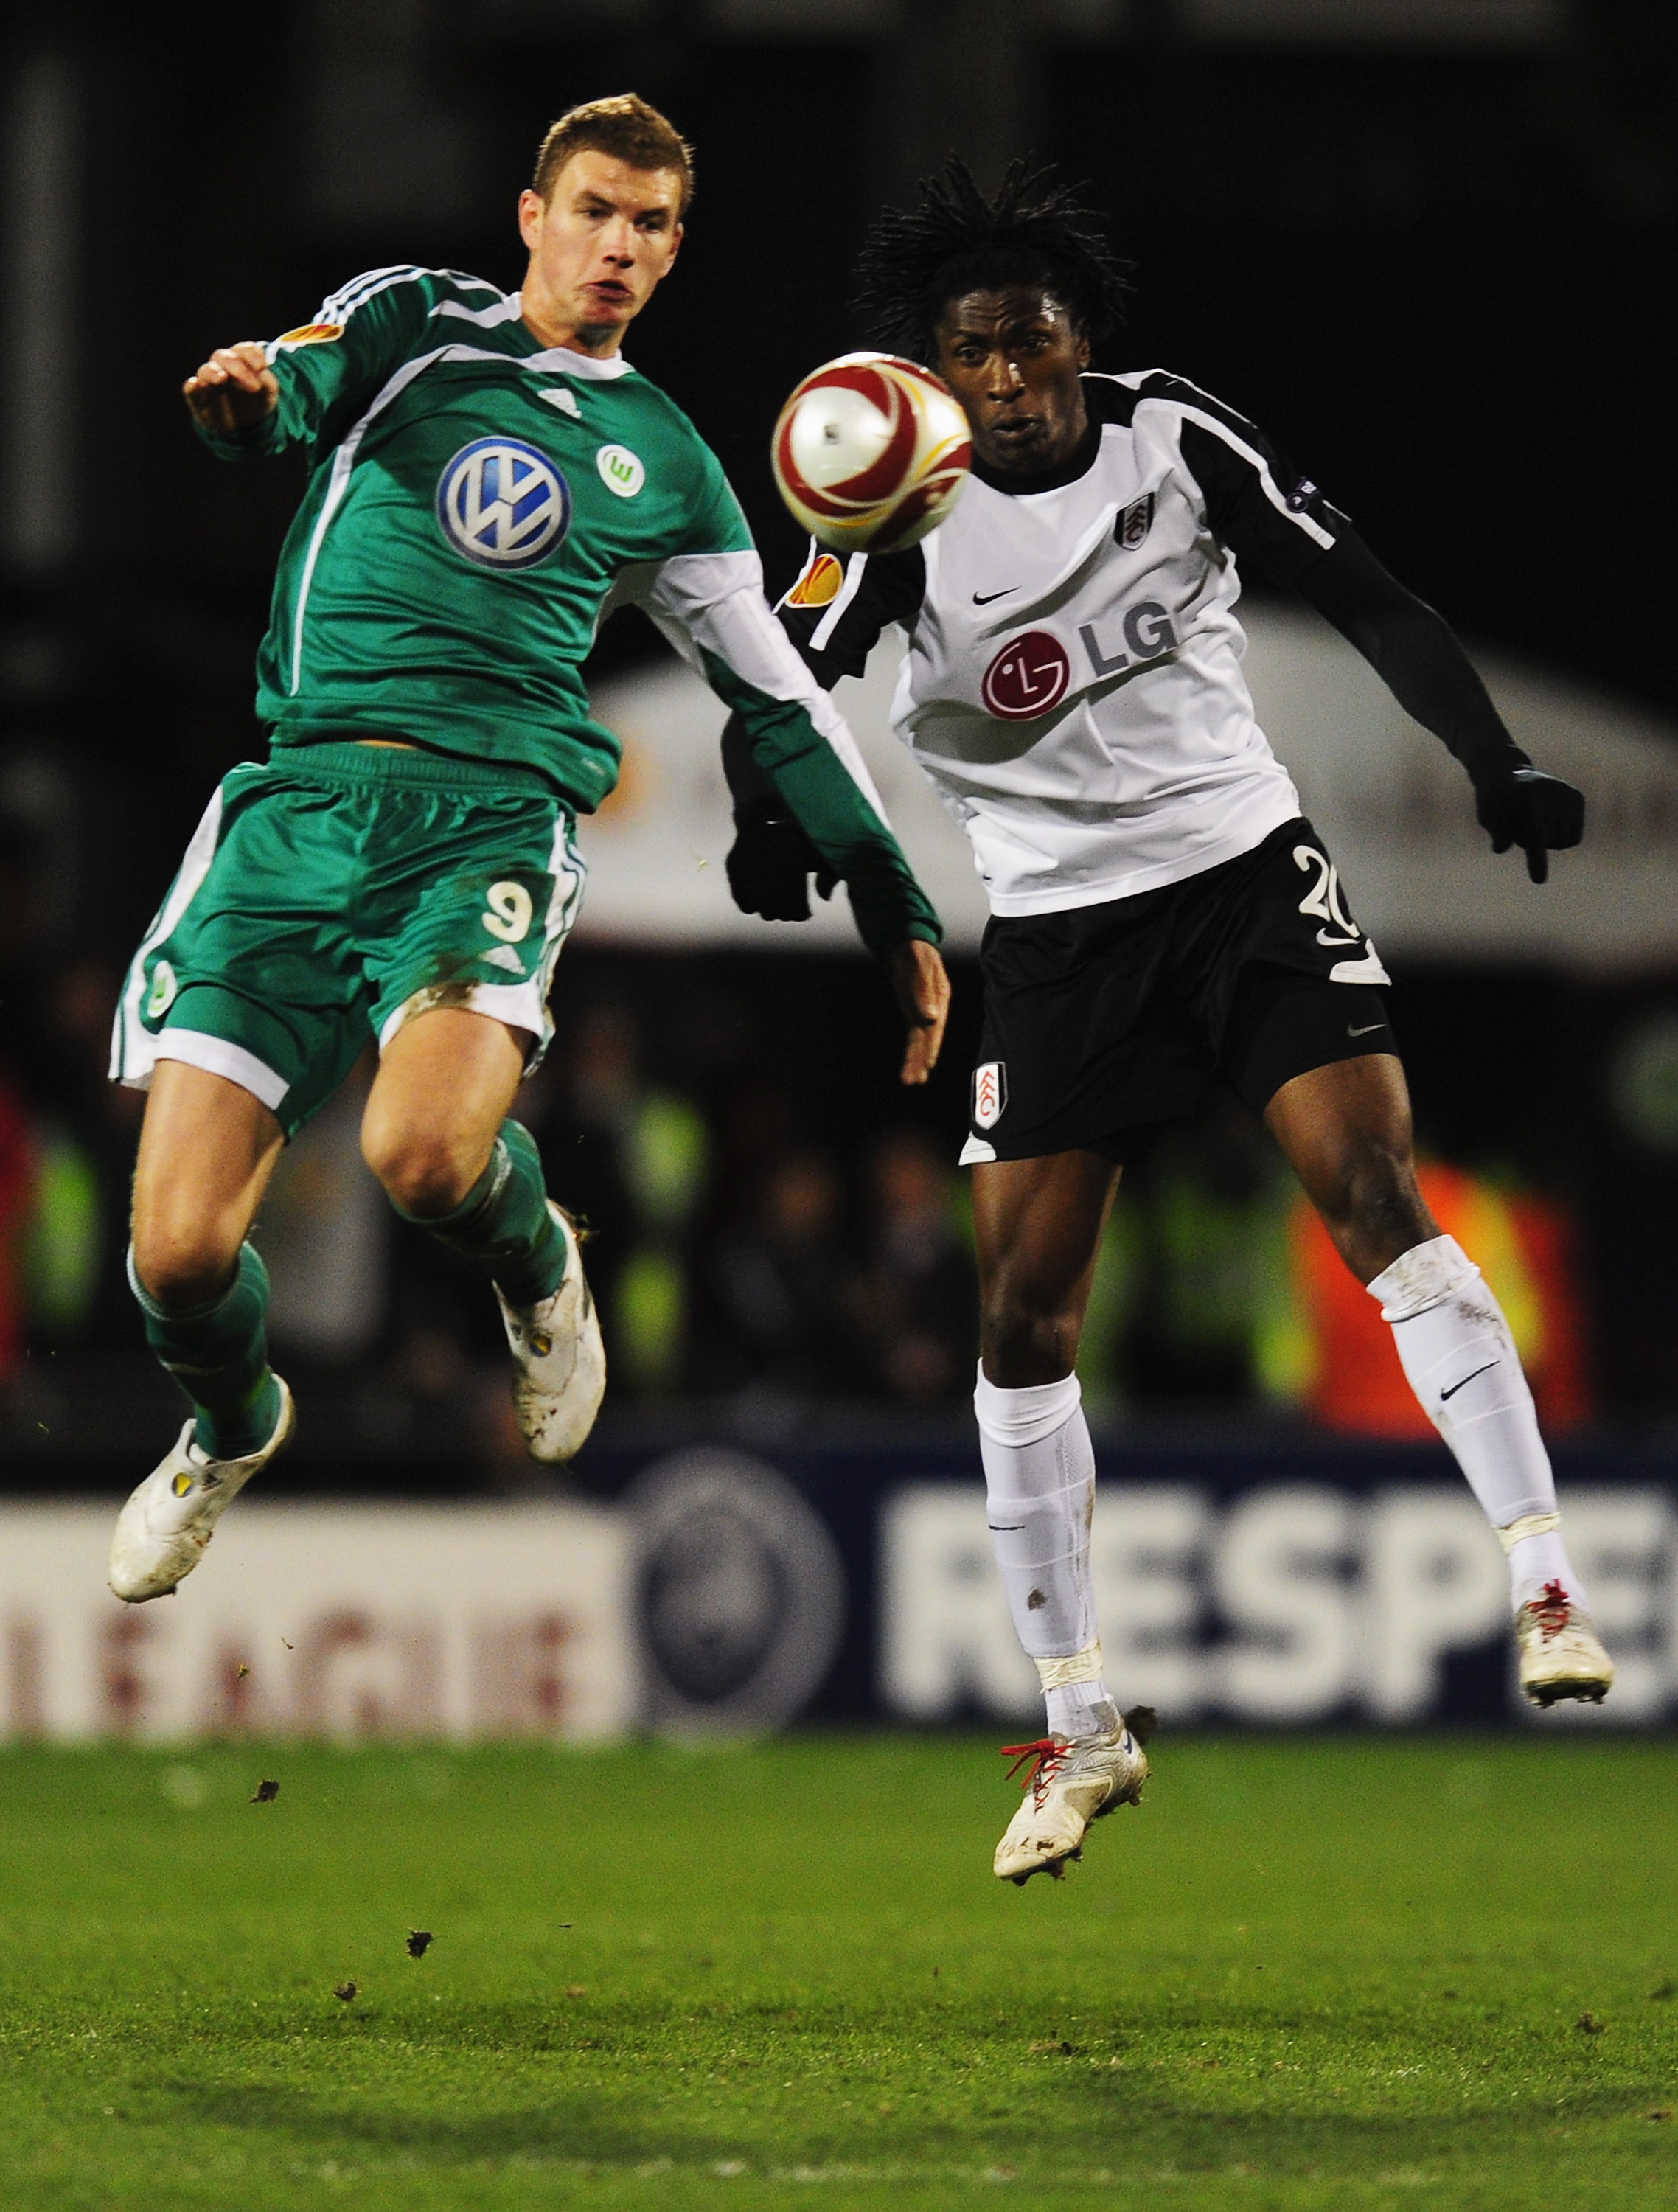 LONDON, ENGLAND - APRIL 01:  Dickson Etuhu of Fulham jumps with Edin Dzeko of VfL Wolfsburg (R) during the UEFA Europa League quarter final first leg match between Fulham and Vfl Wolfsburg at Craven Cottage on April 1, 2010 in London, England.  (Photo by